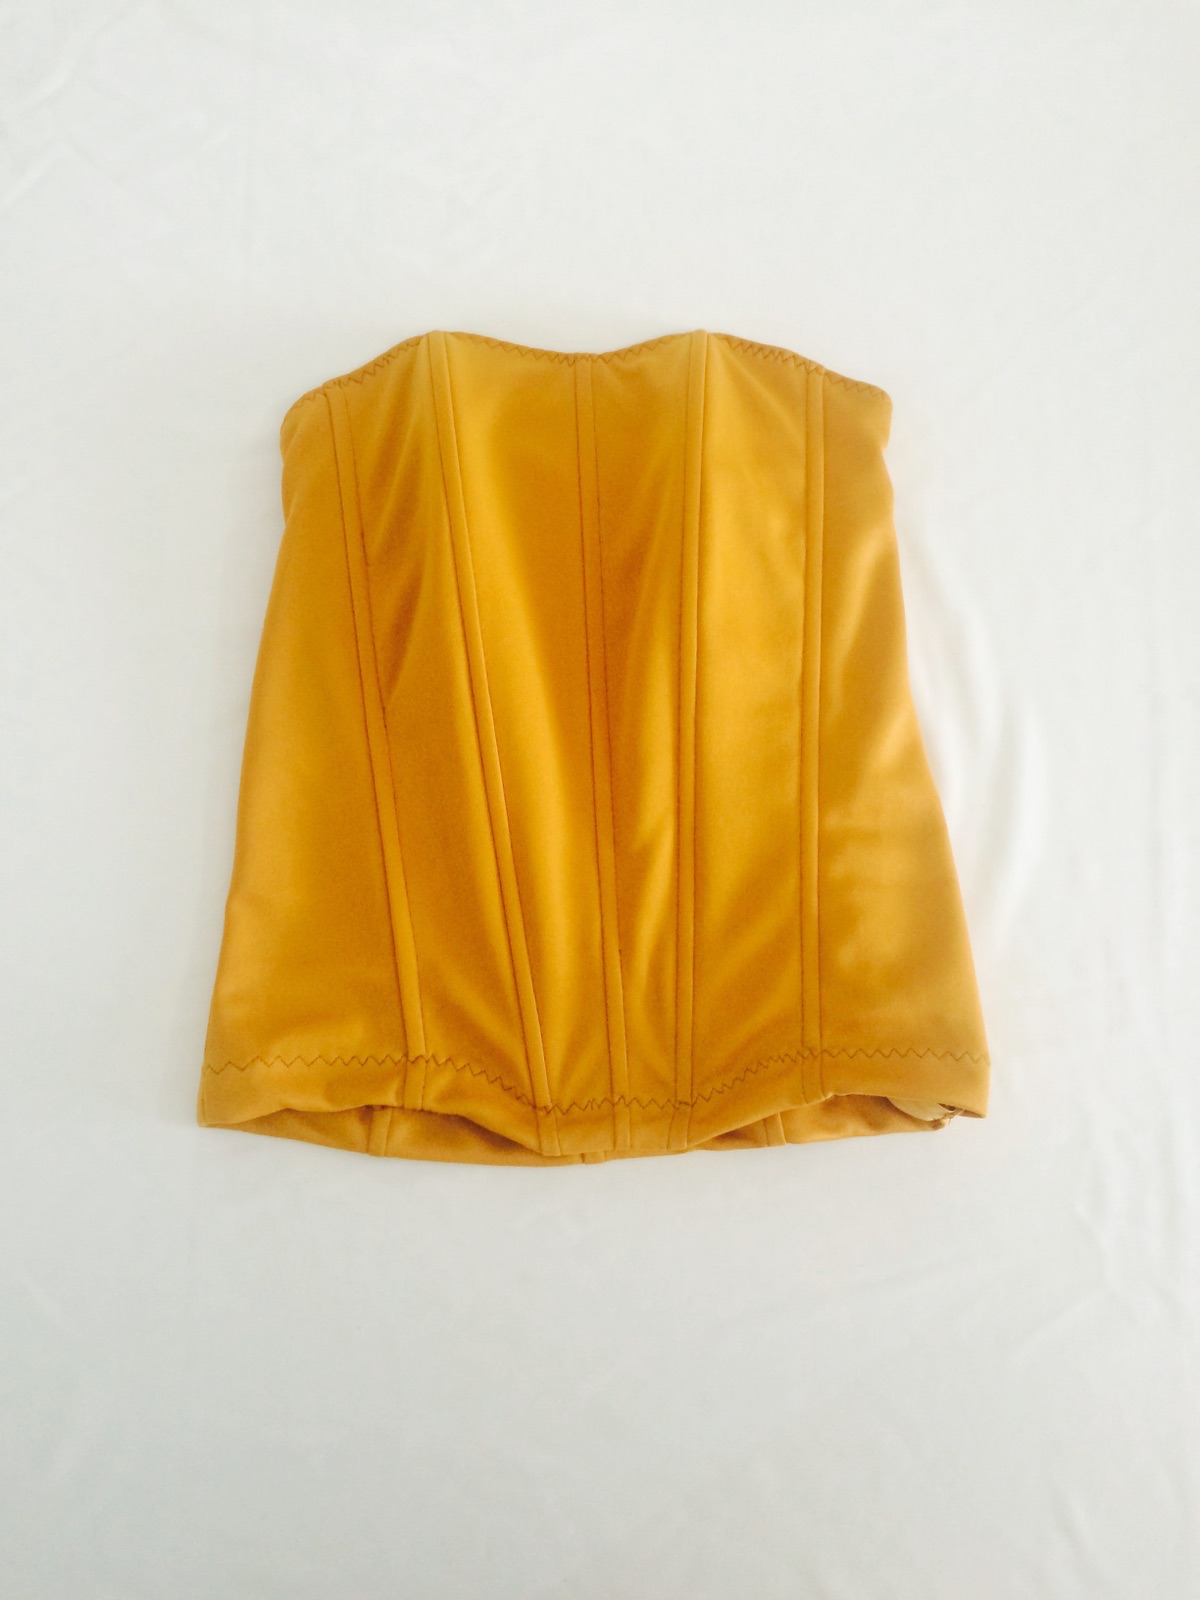 Bustier  kamisol  bustier tulang 8 cup polyester murah ccddc2c201